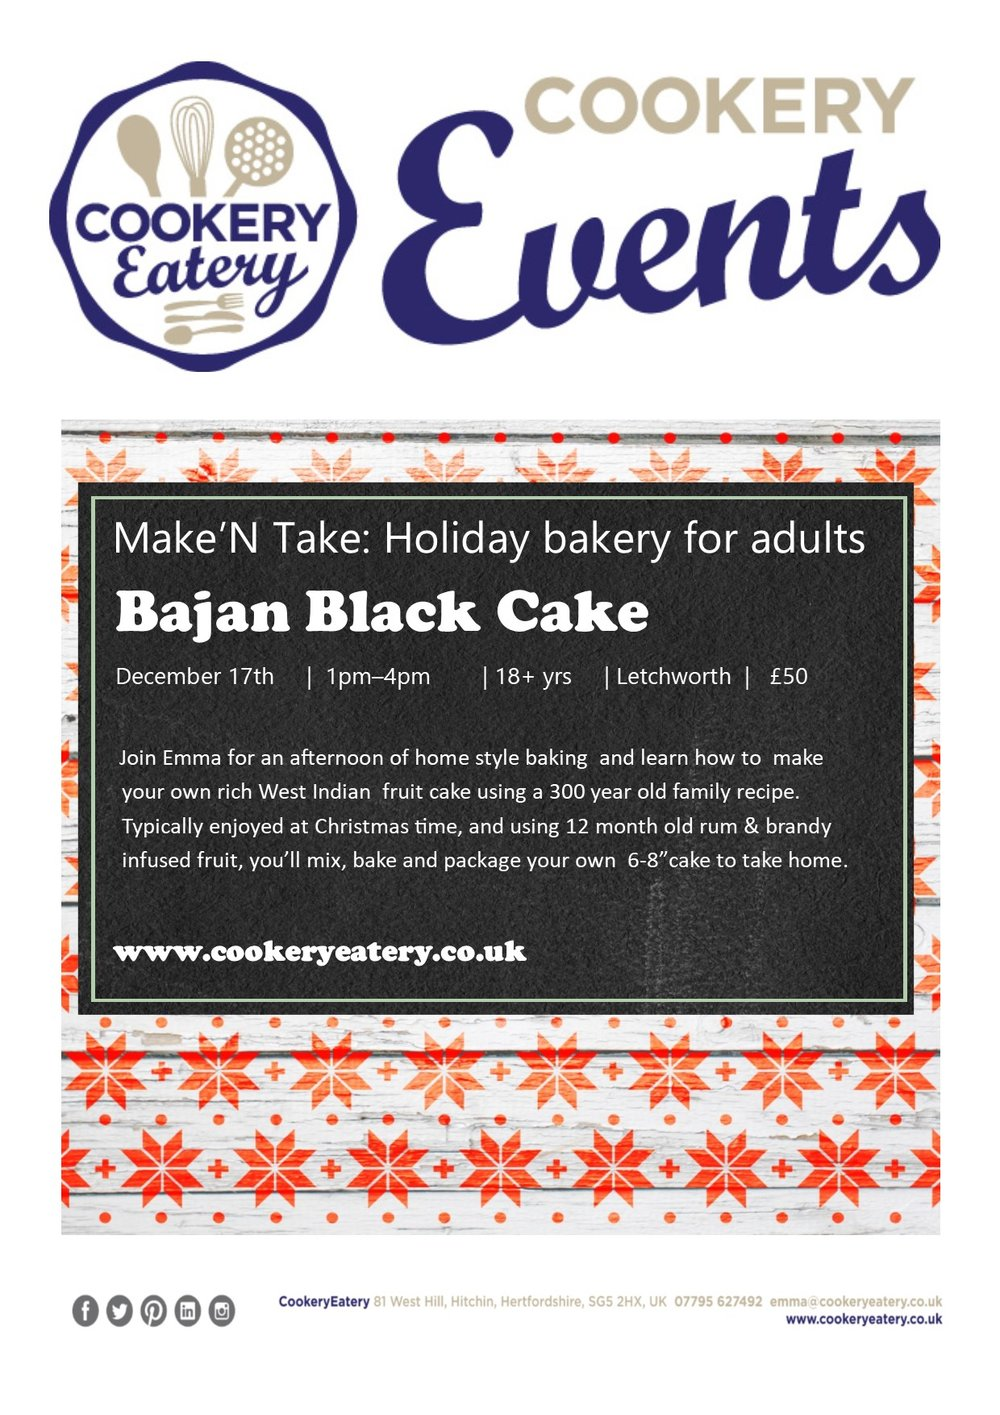 CookeryEatery.MAKE N TAKE. Holiday Bakery for Adults.Bajan Black Cake.Dec17.jpg